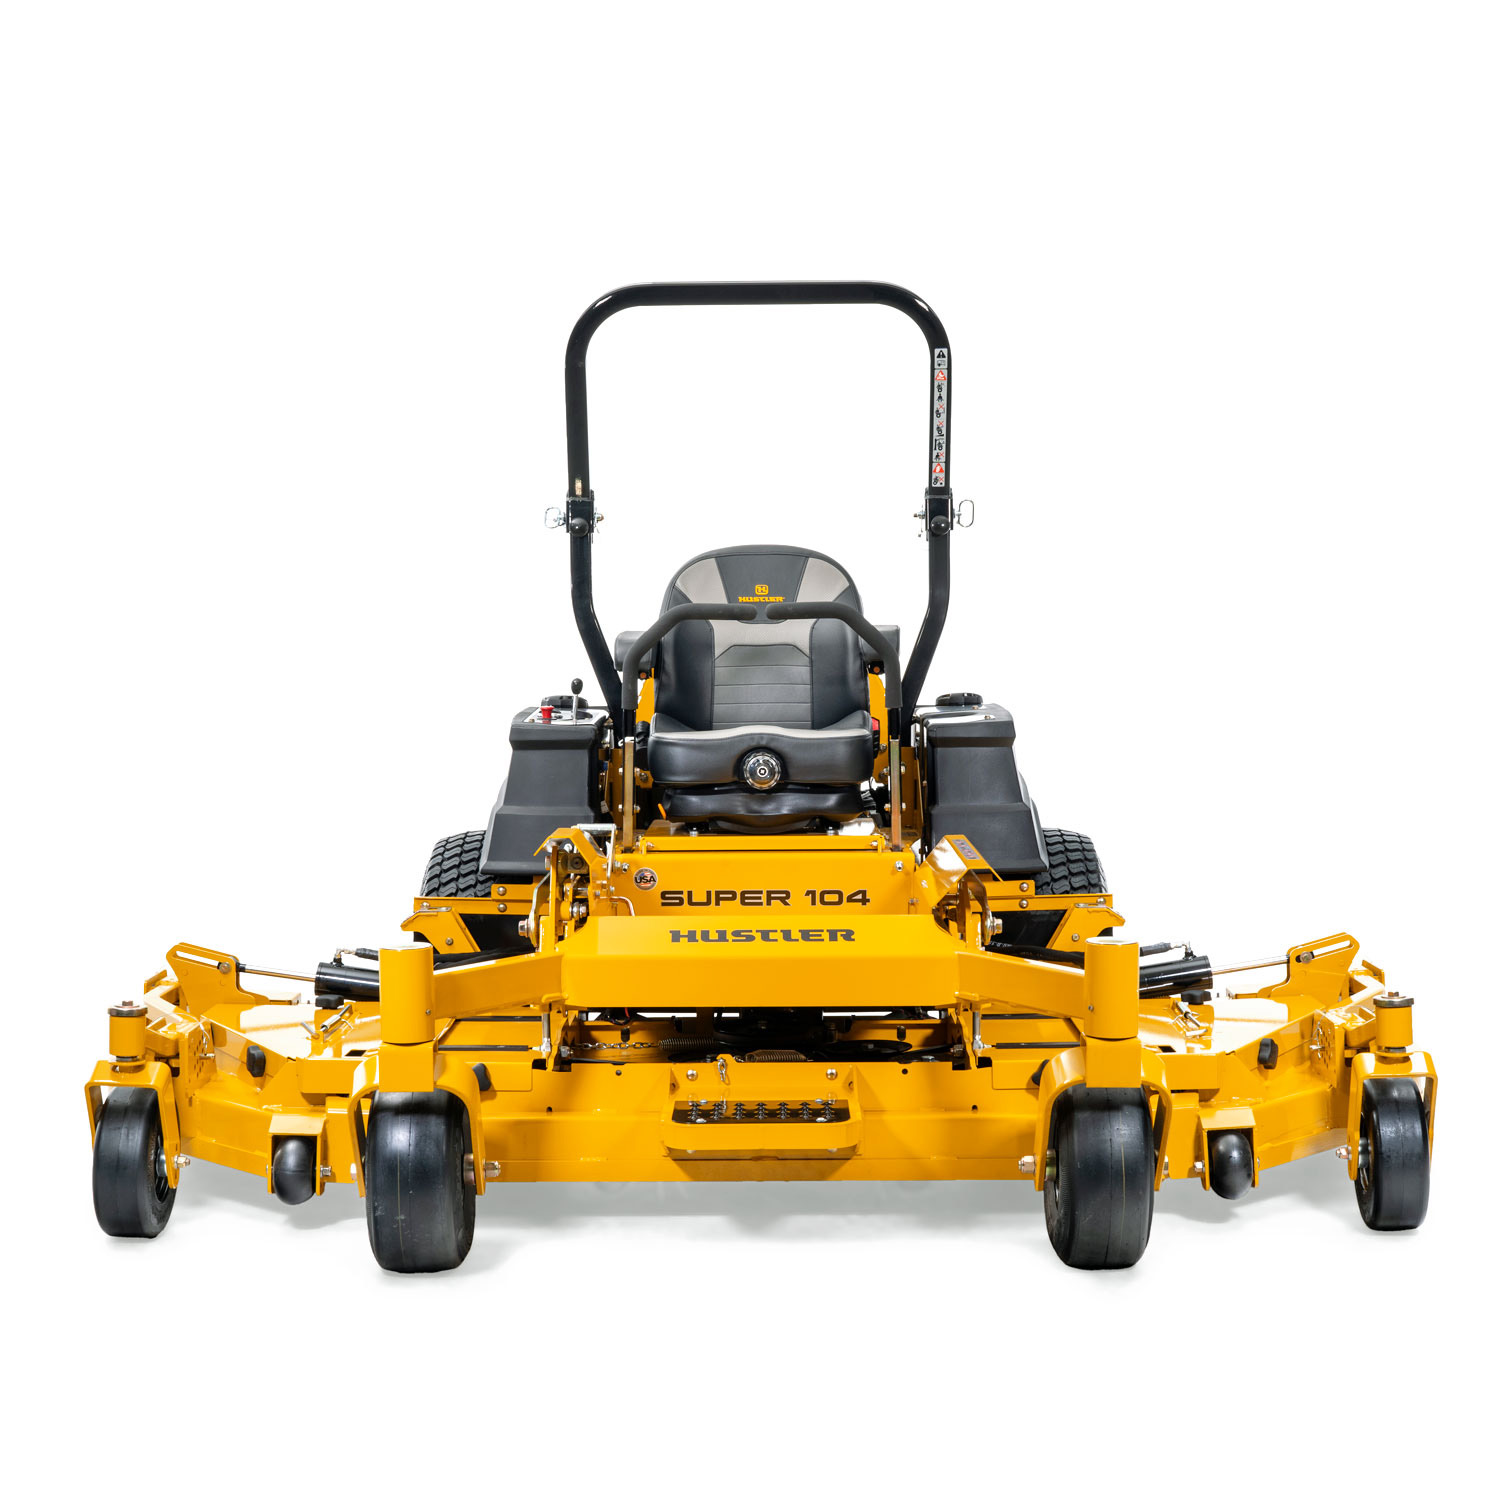 Image of the front of a yellow zero-turn mower with wing decks unfolded next to the main deck